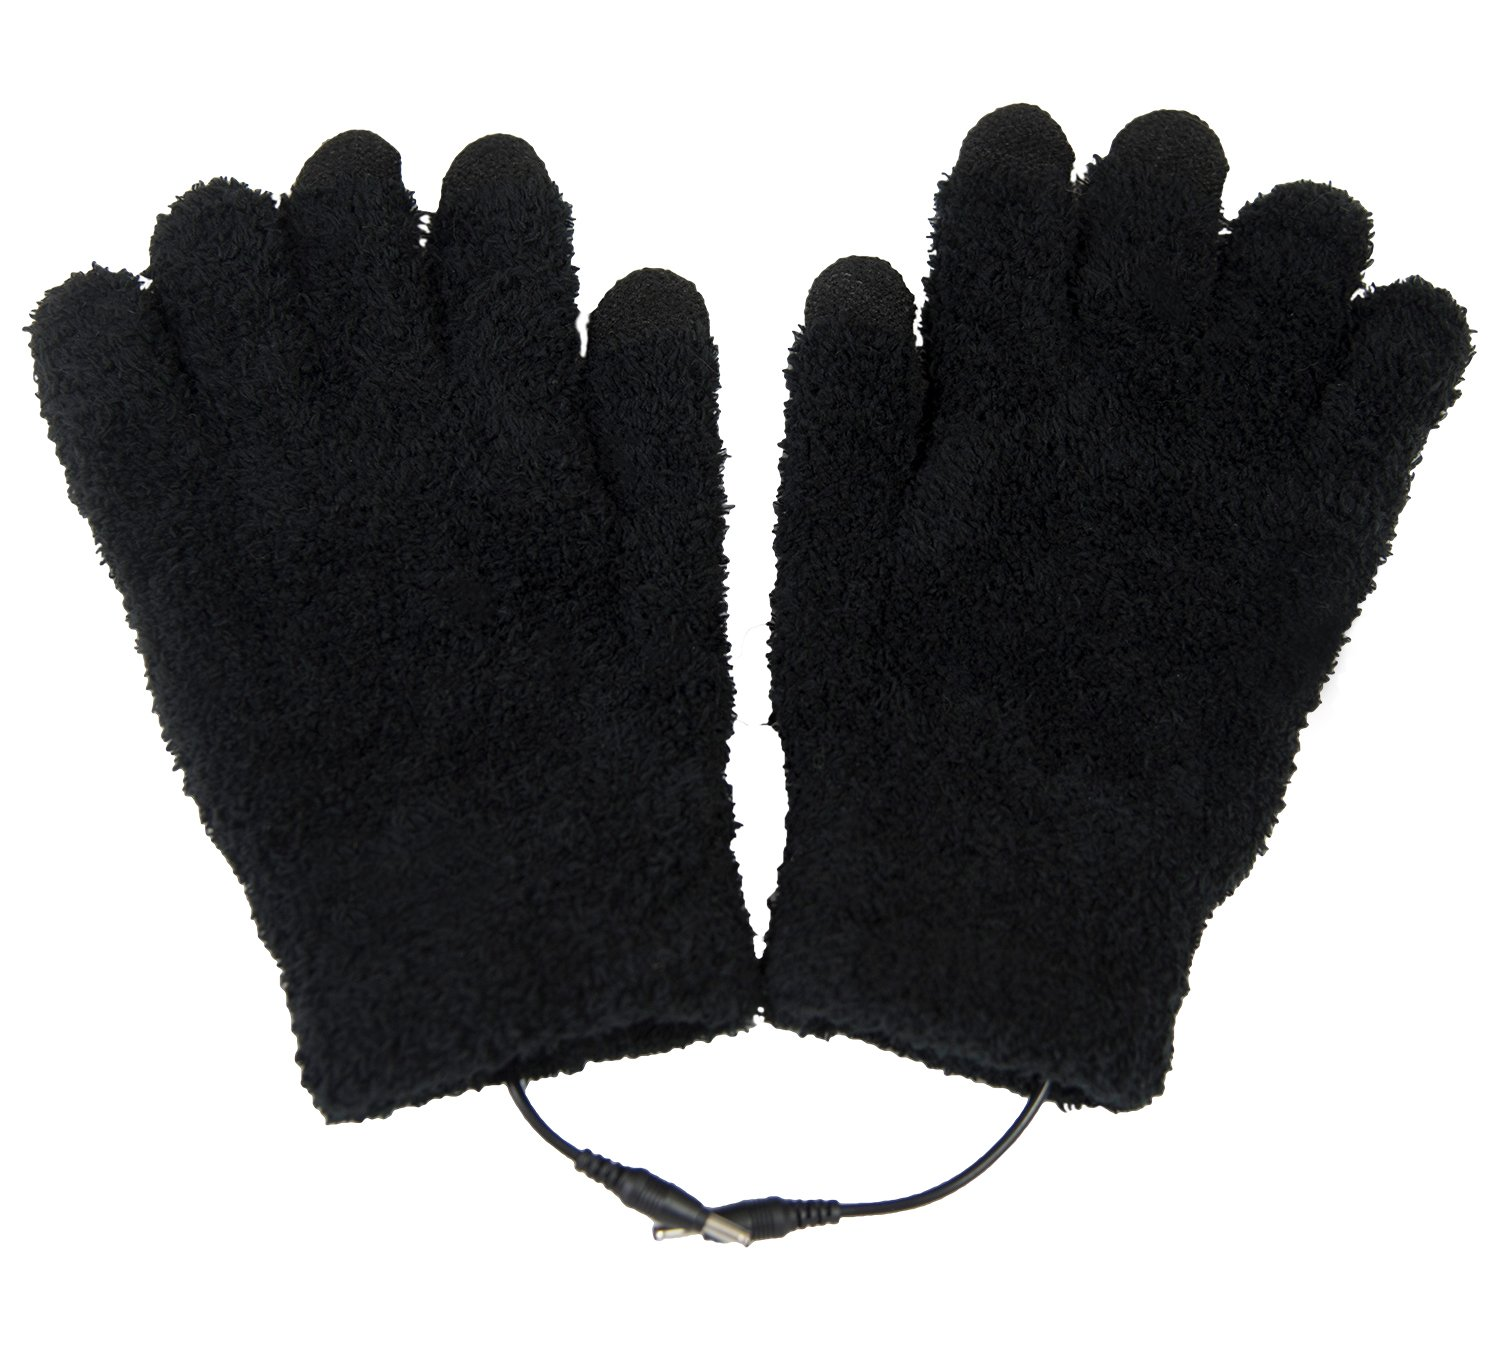 ObboMed MH-1025 Touchscreen USB 5V Composite Heating Element Warming Full Finger Stretchy Gloves–Connect to USB Port,PC,Laptop, Adapter for Power– can use on Cell Phone, iPad – 9''x5.9''